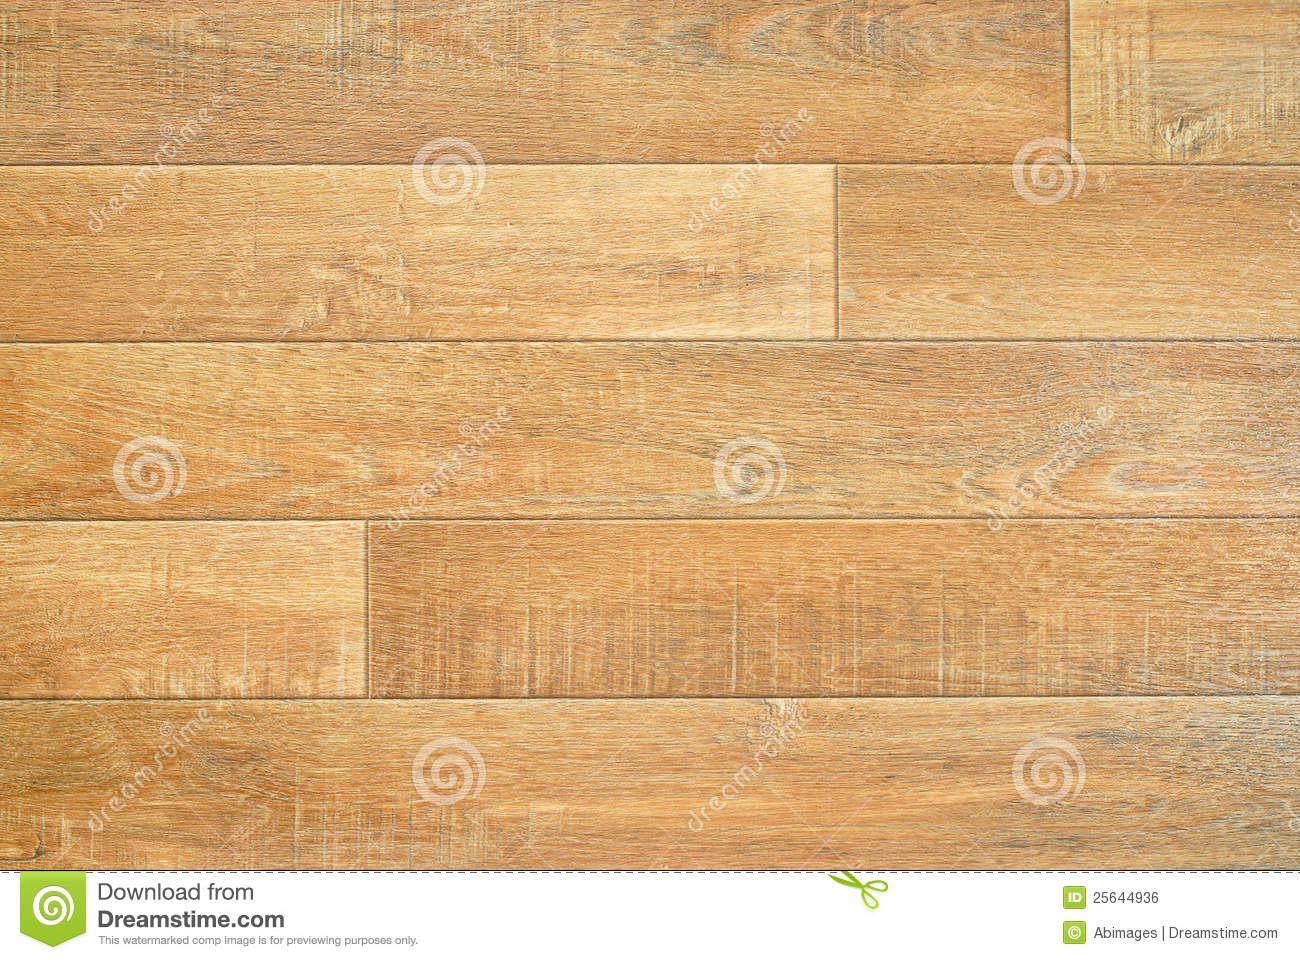 Fake wooden floor royalty free stock image image 25644936 for Fake wood flooring